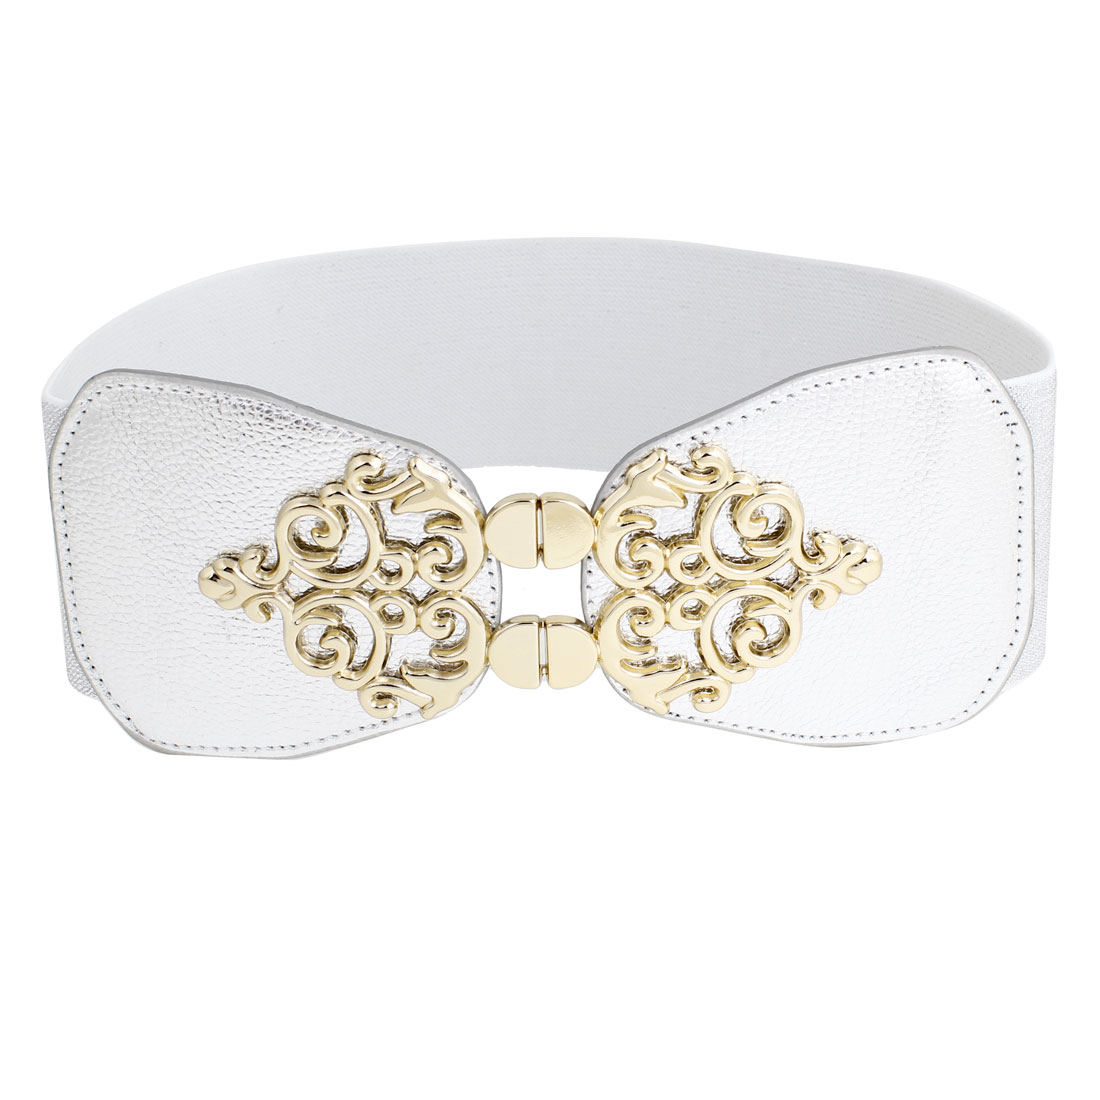 Women Metal Flower Detailing Hook Buckle Stretchy Waistbelt Band Silver Tone